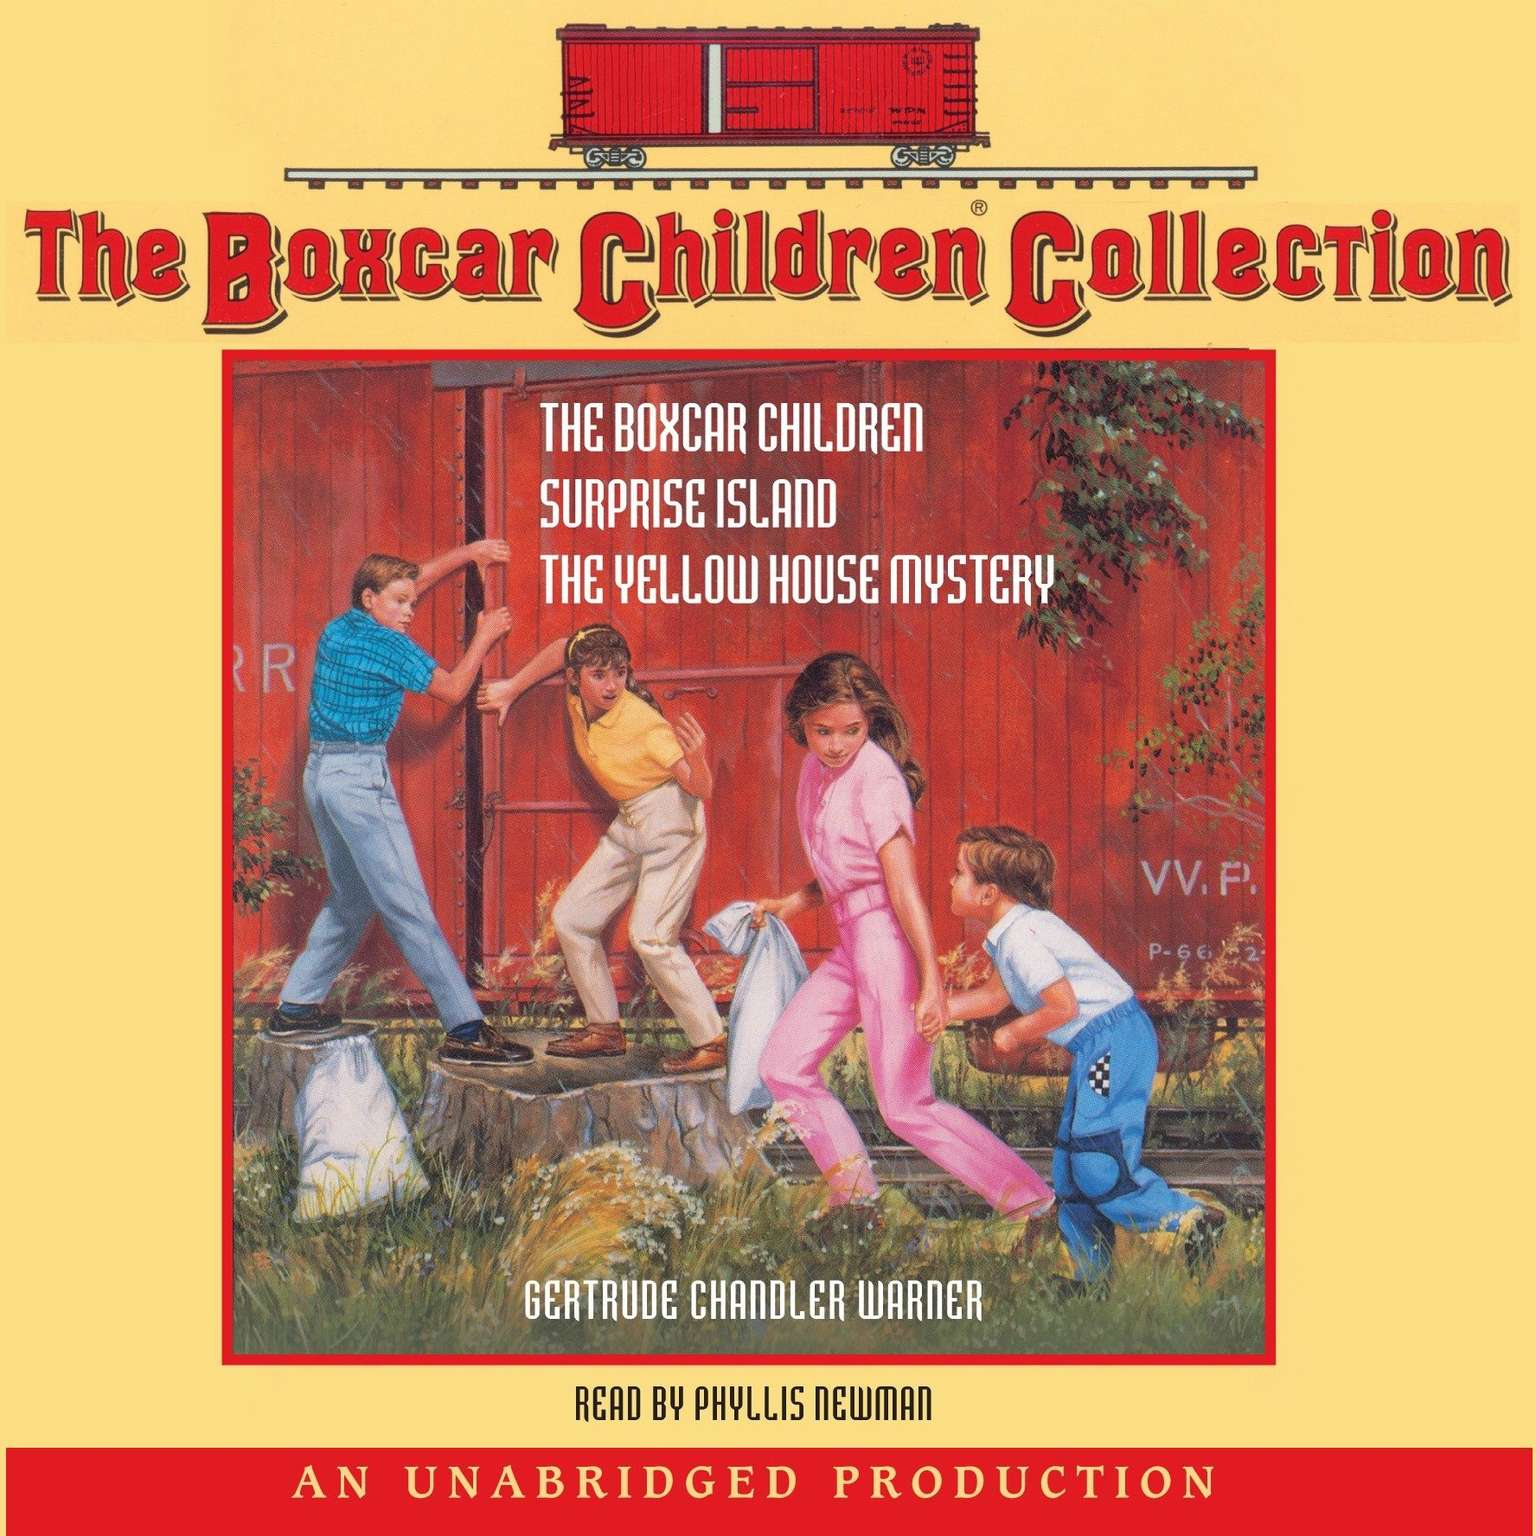 Printable The Boxcar Children Collection: #1: The Boxcar Children; #2: Surprise Island; #3: The Yellow House Mystery Audiobook Cover Art